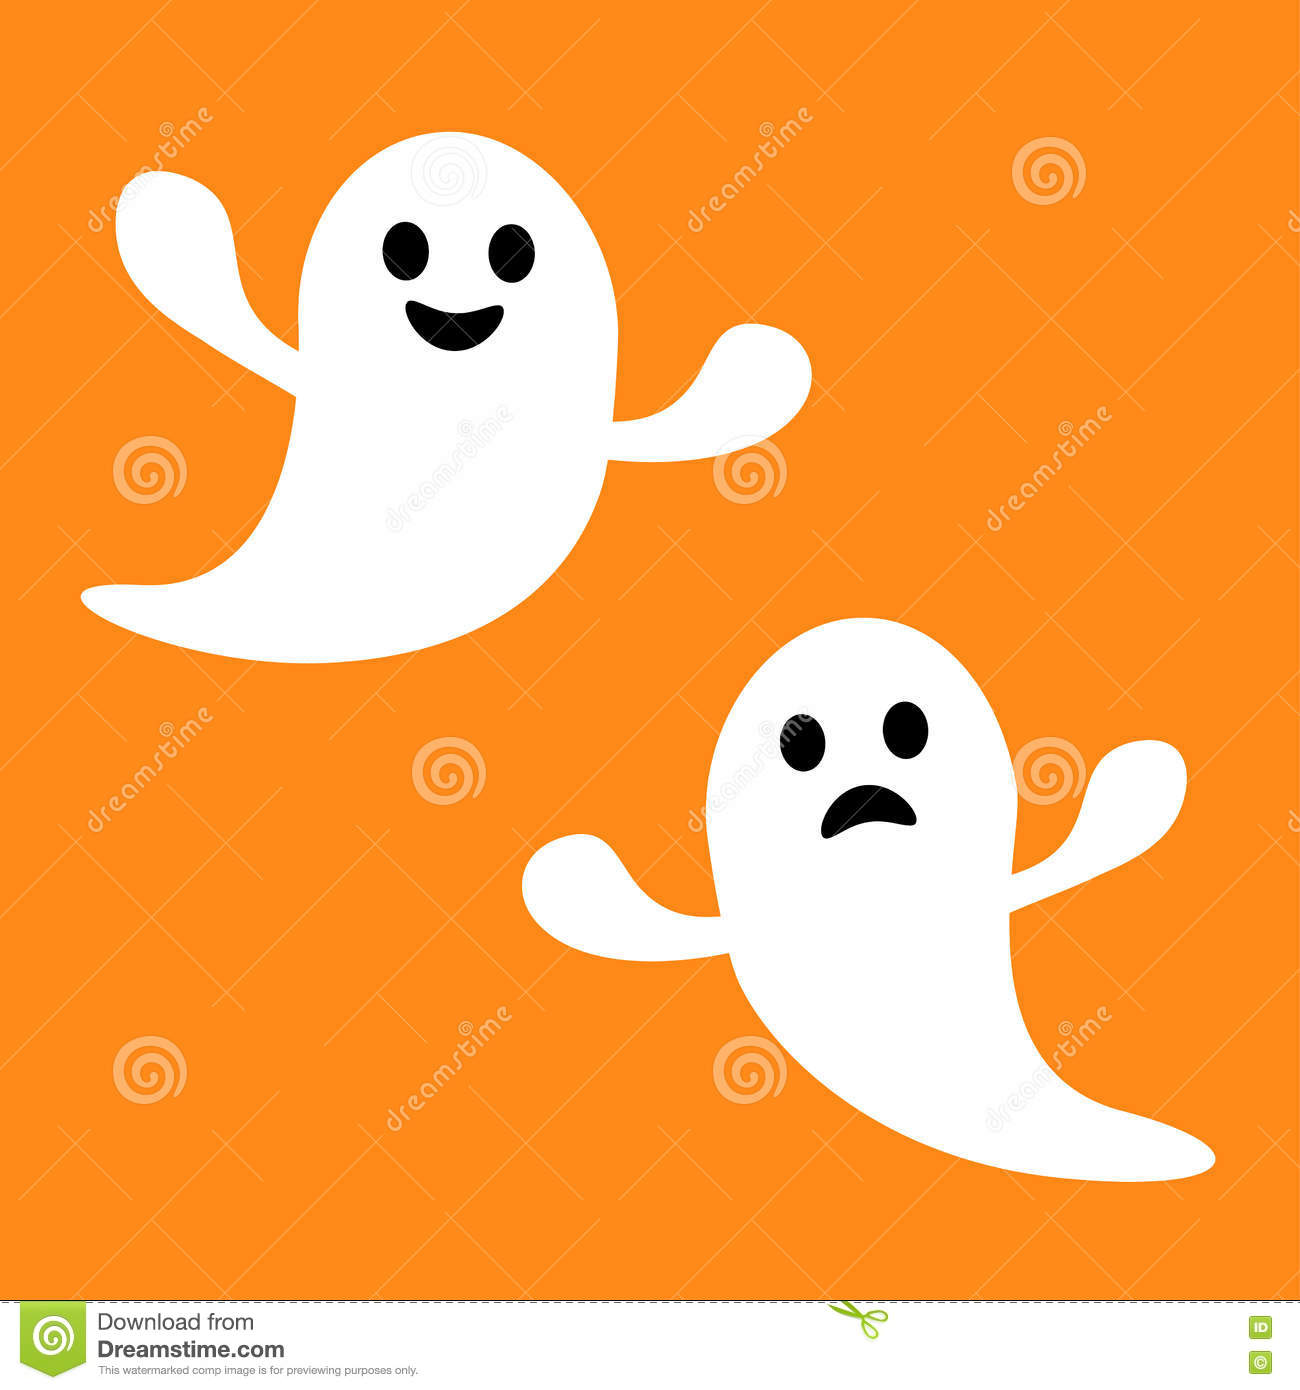 Scary Halloween Ghost Boo Face Royalty Free Stock Image - Image: 20806